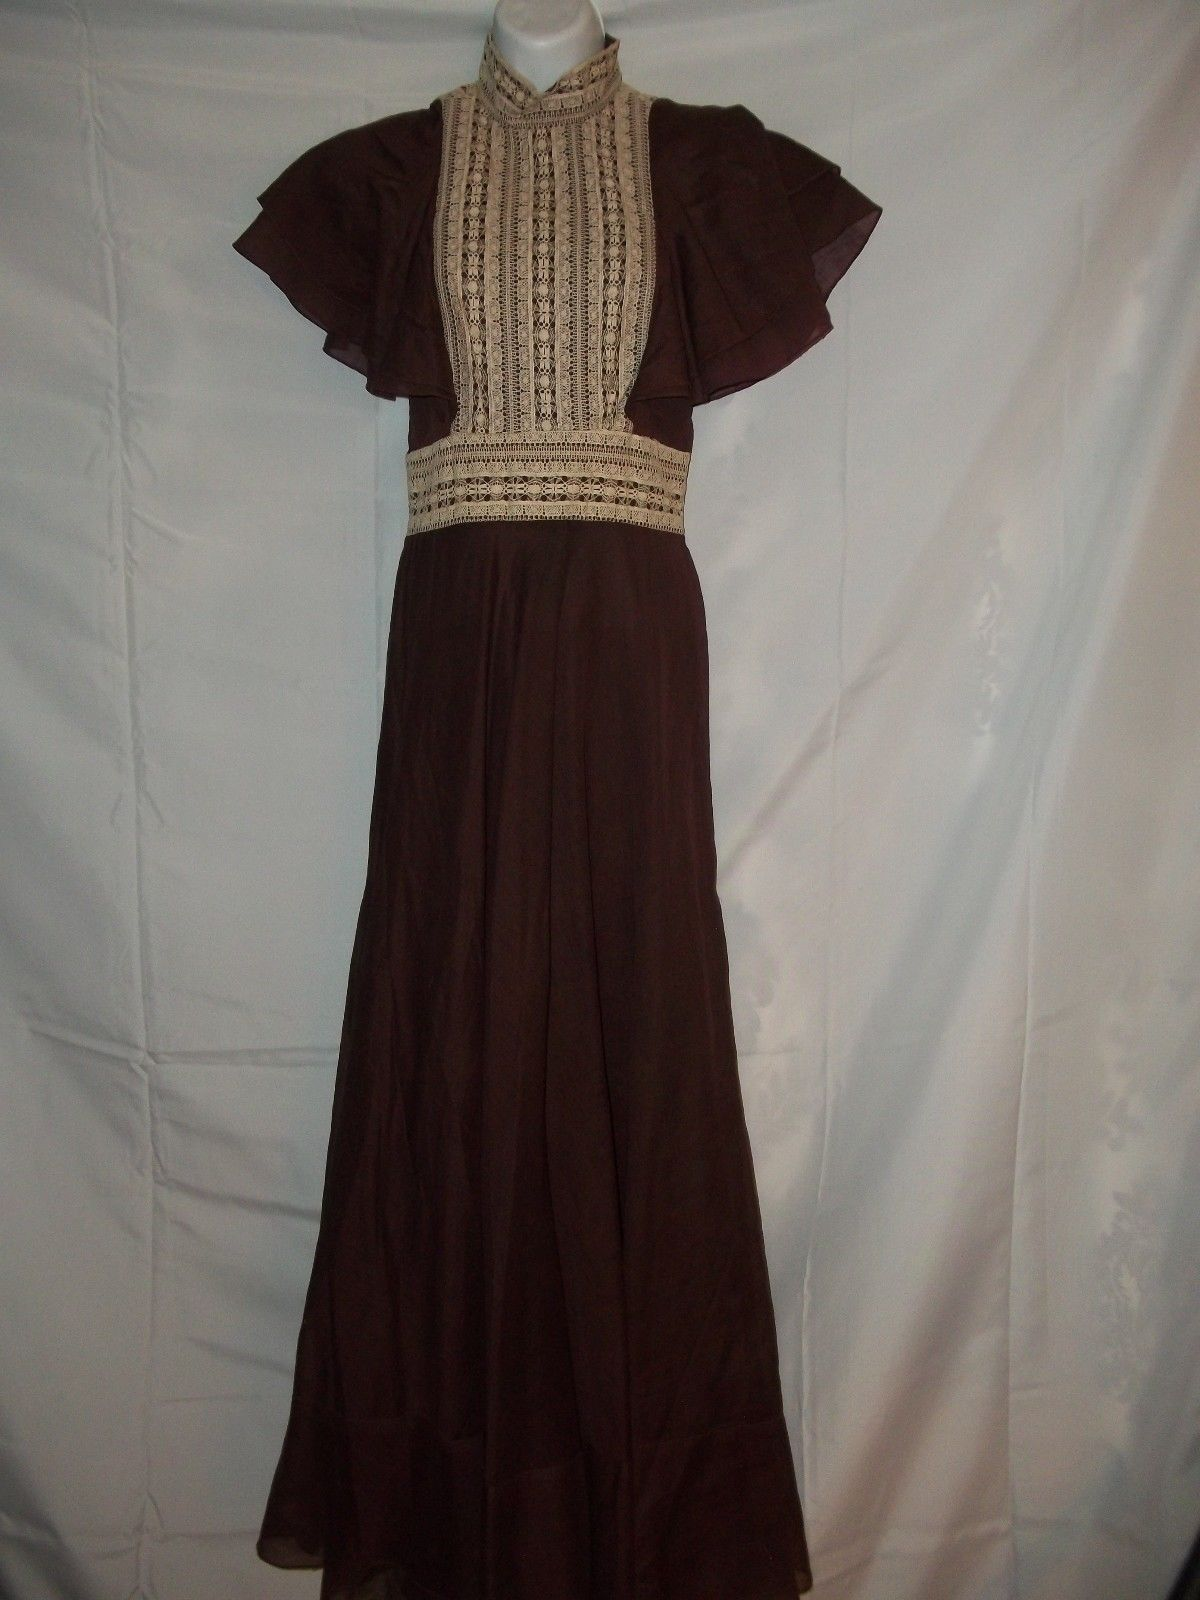 Primary image for Vintage 70s S. Howard Hirsh California Eggplant w/ Lace Maxi Dress Size 8 Classy